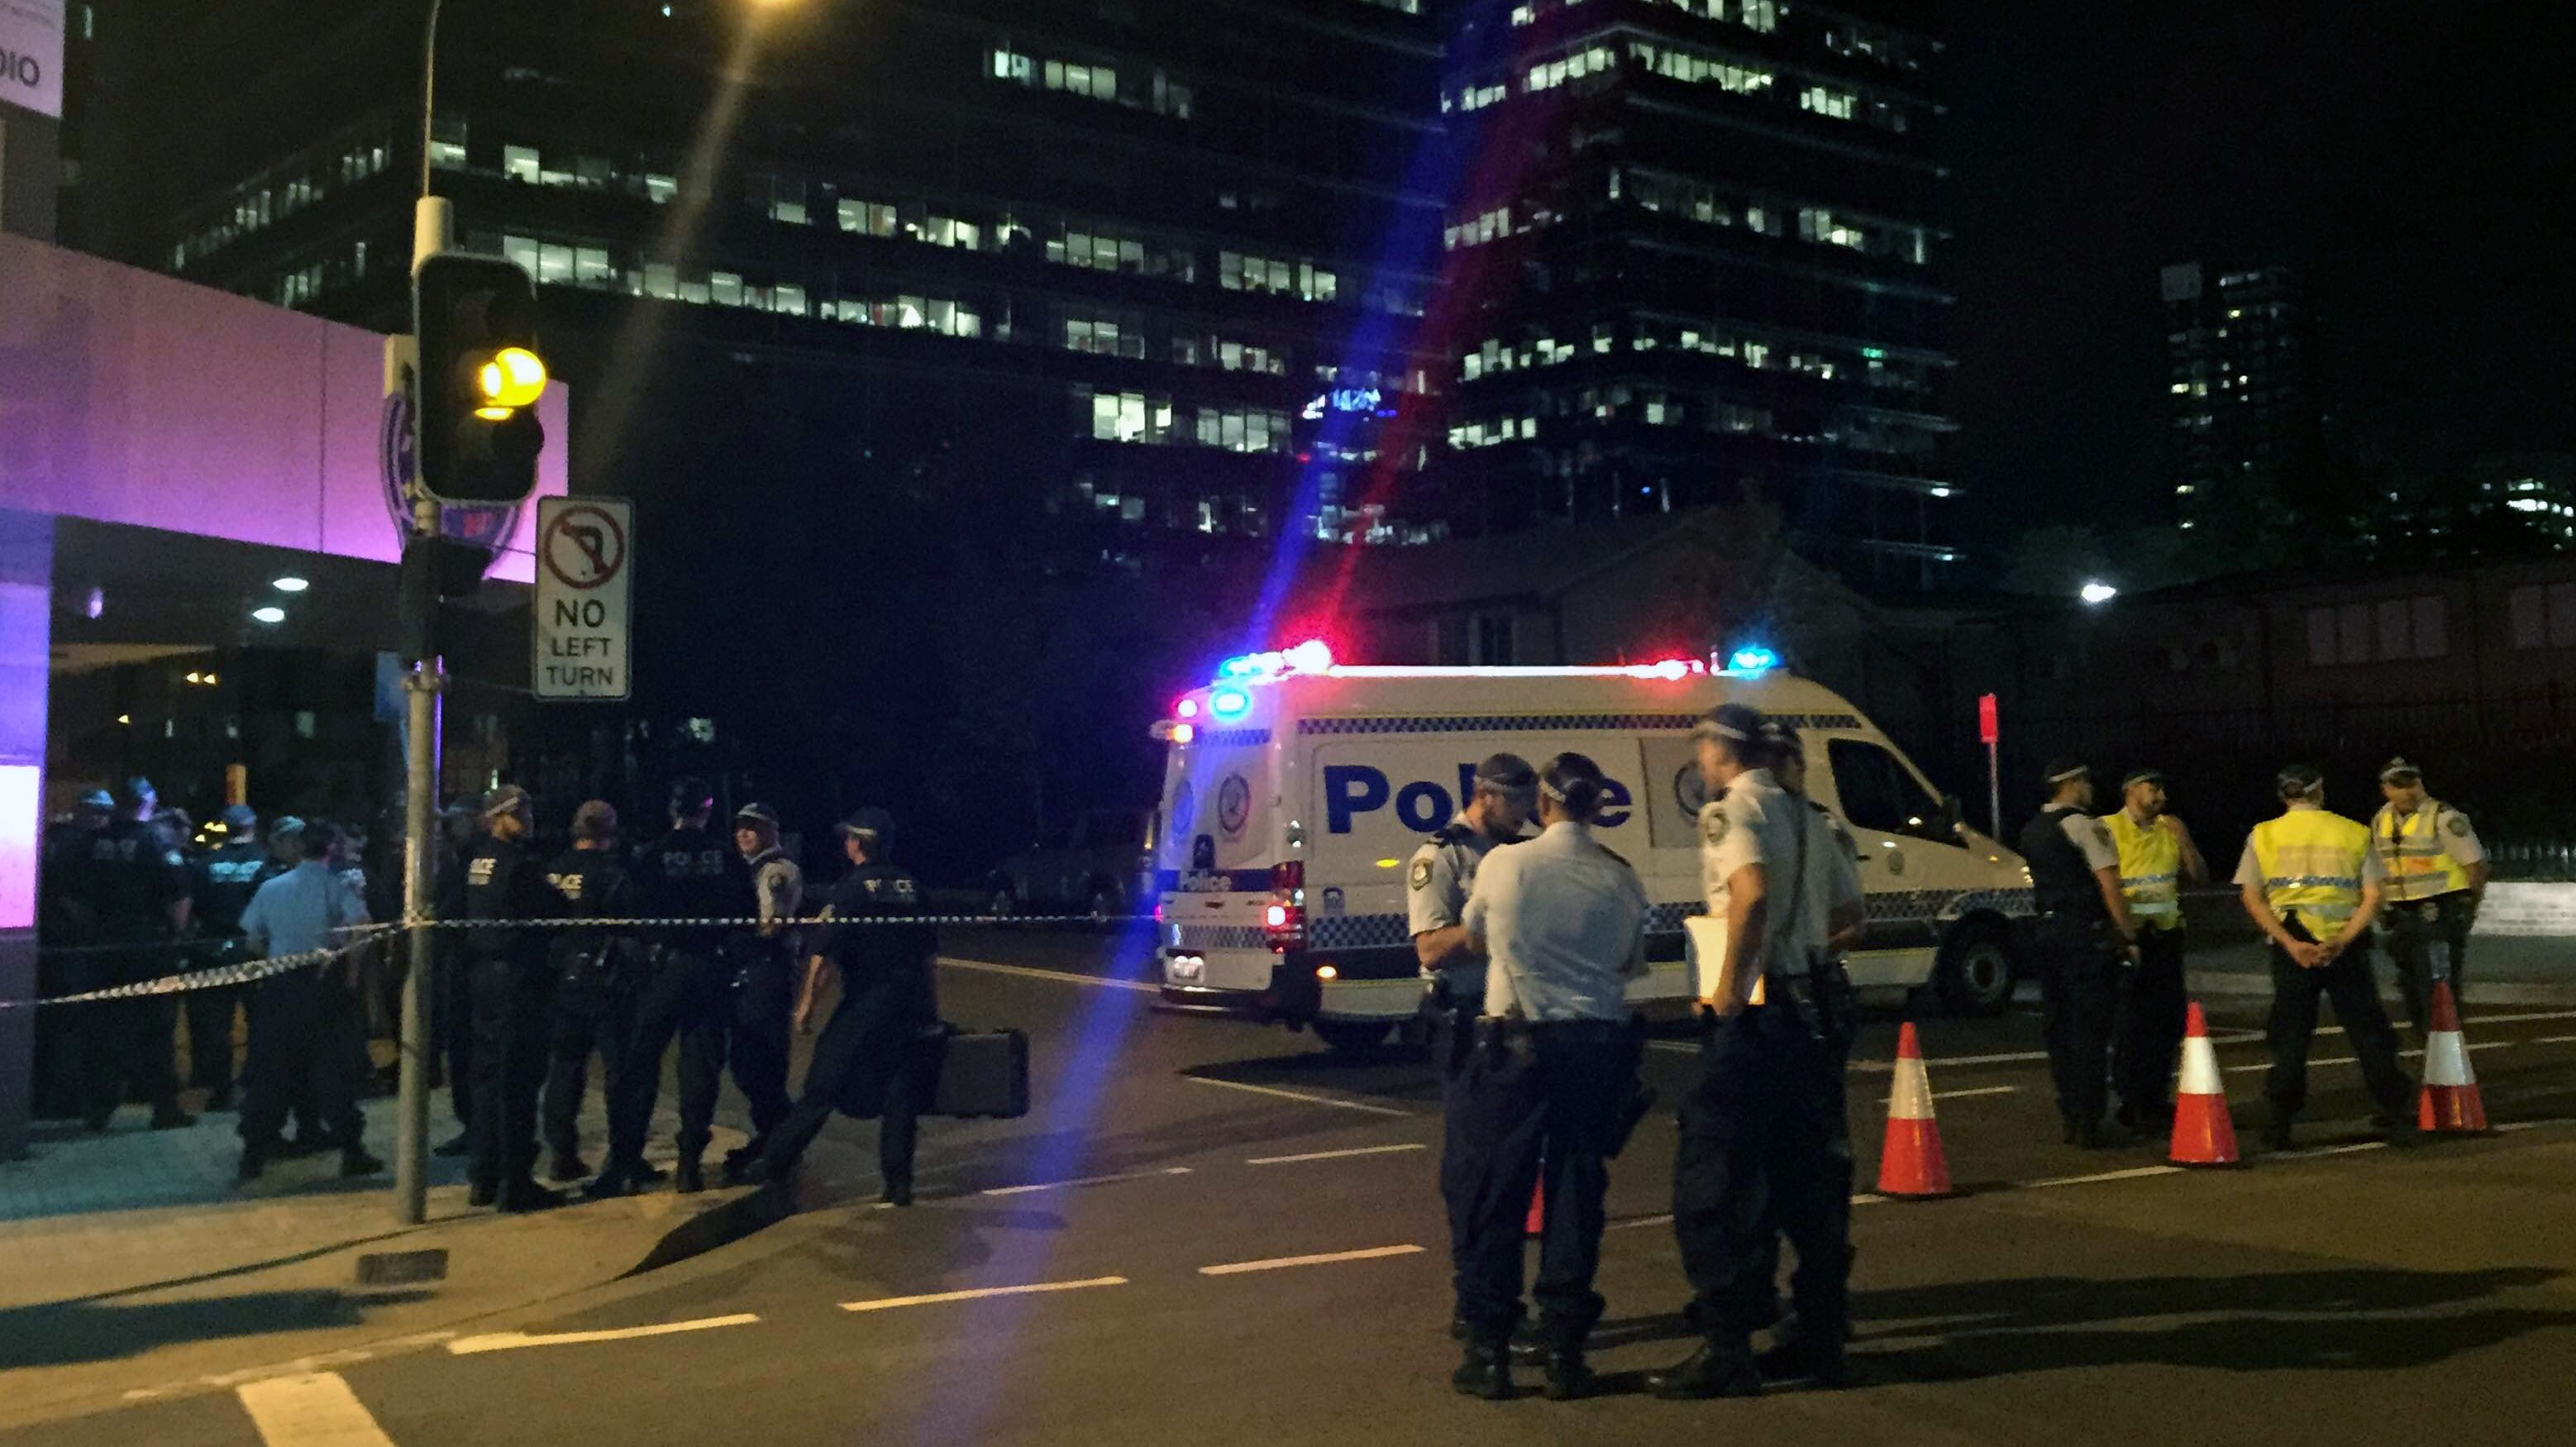 Australian Authorities Say Shooting by Teen at Police Station Is 'Linked to Terrorism'